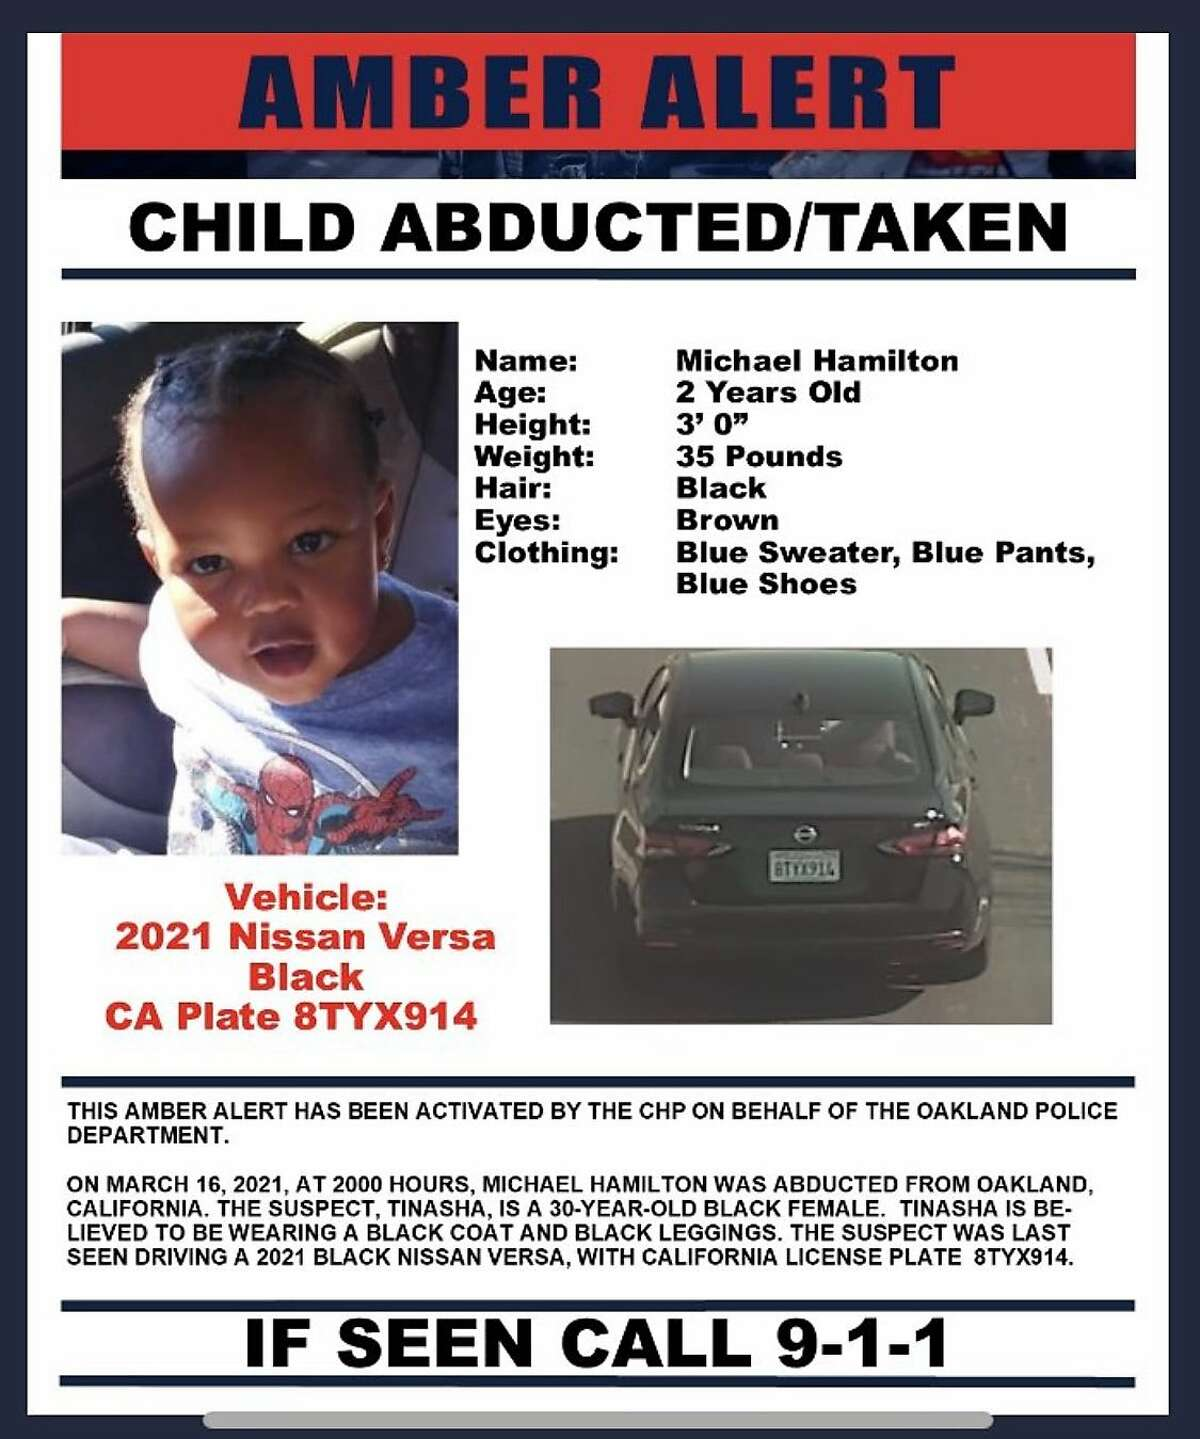 Police are searching for a 2-year-old child, Michael Hamilton, whom they say was kidnapped in Oakland Tuesday.